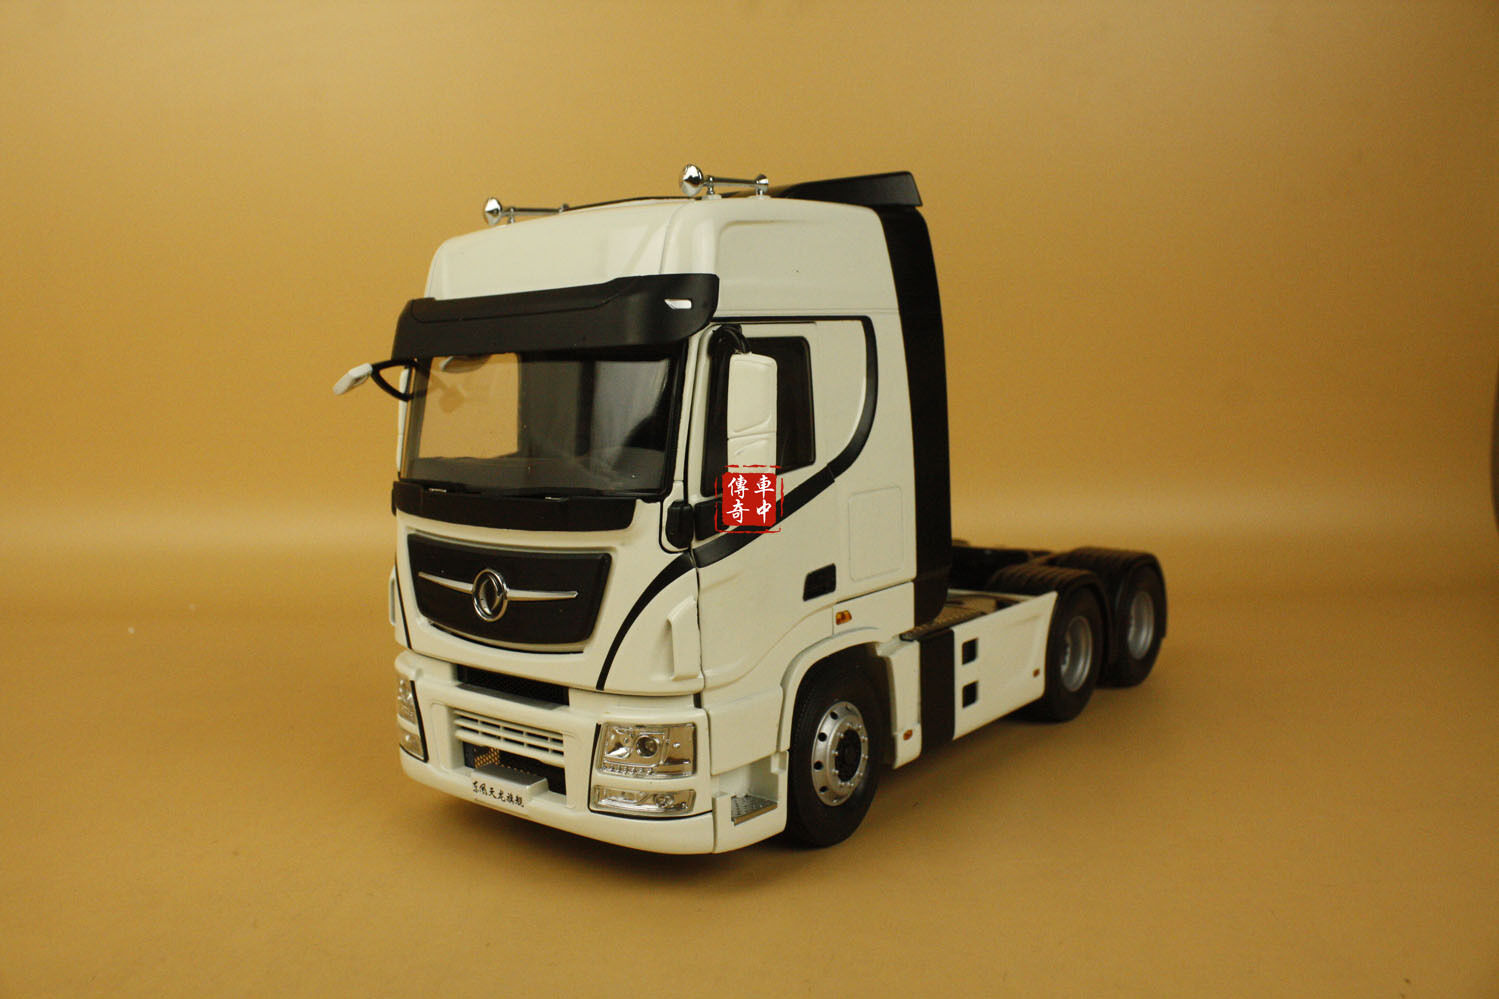 1 24 Cina CAMION DF DONGFENG tianlungo TrattoreTrattore Camion modellololo di Coloreeee bianco